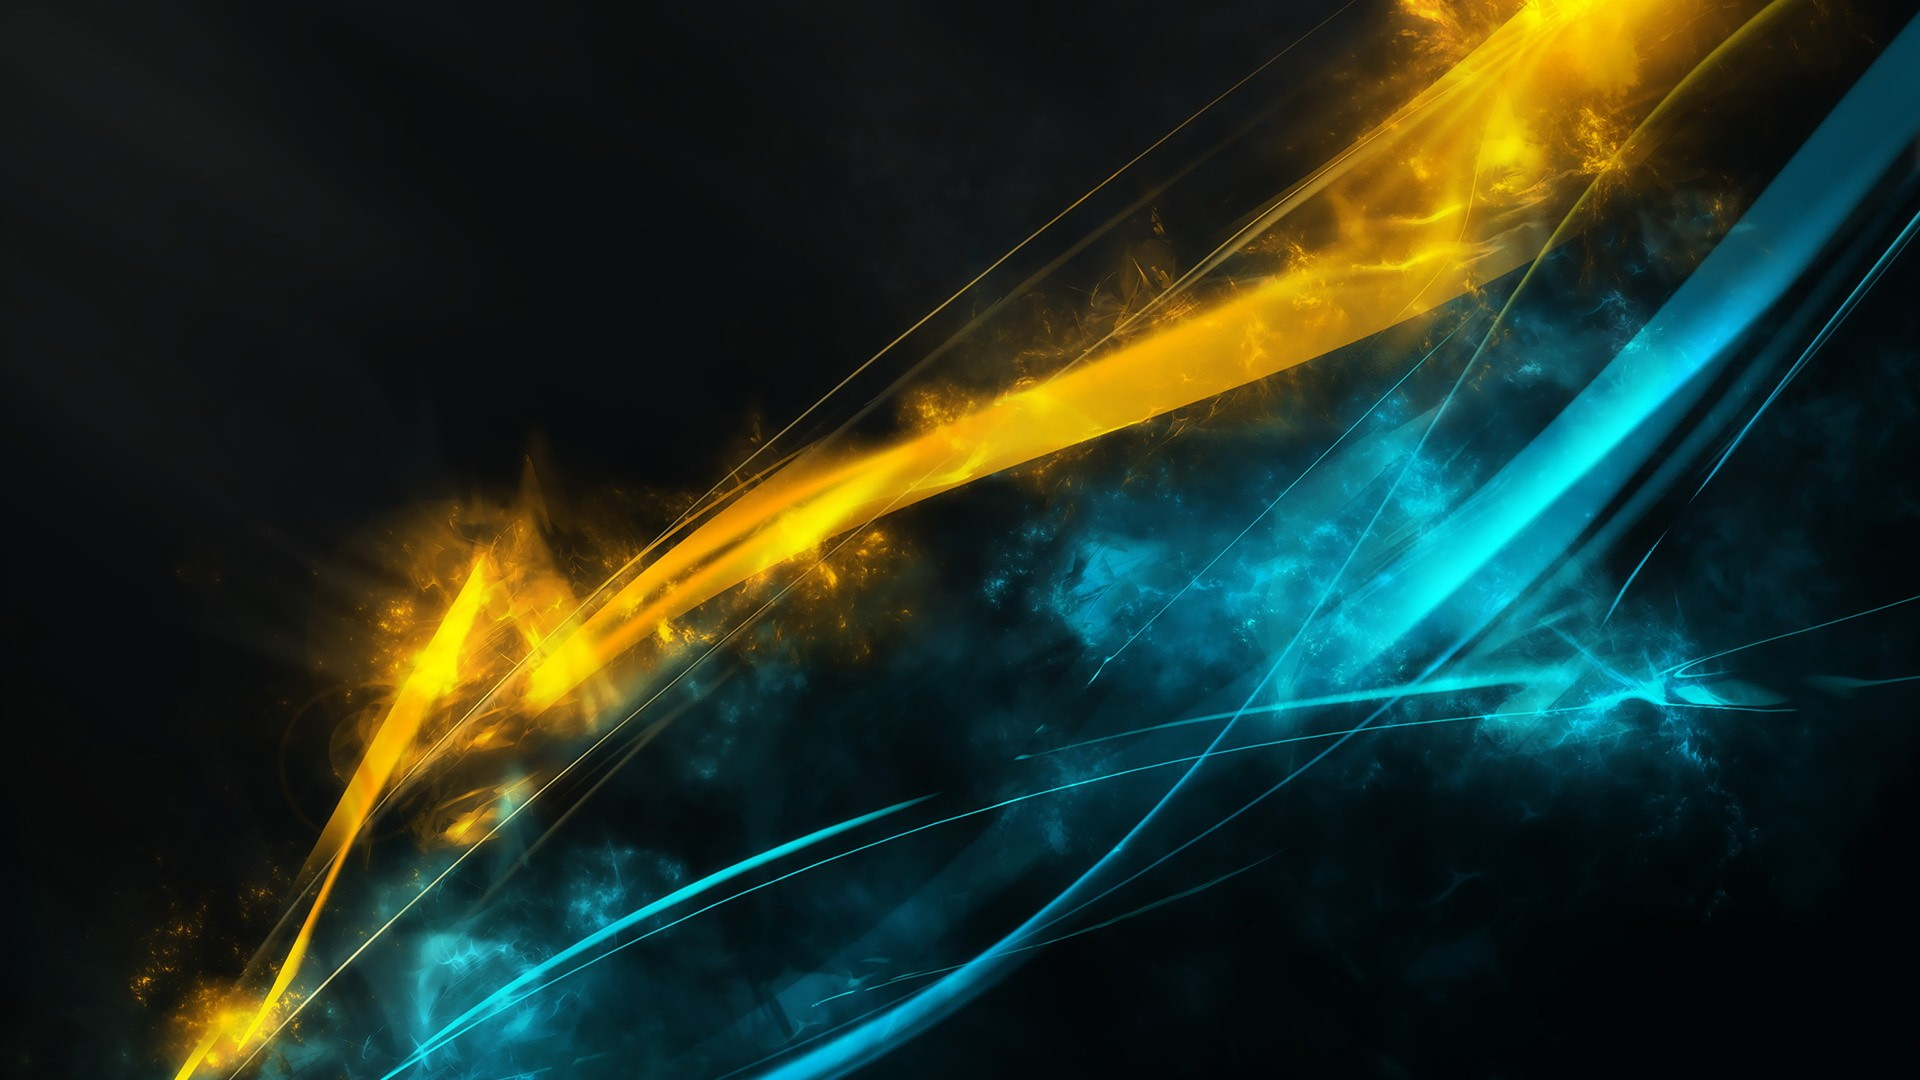 Abstract Wallpaper 1920x1080 Full HD 1080p Best HD 1920x1080